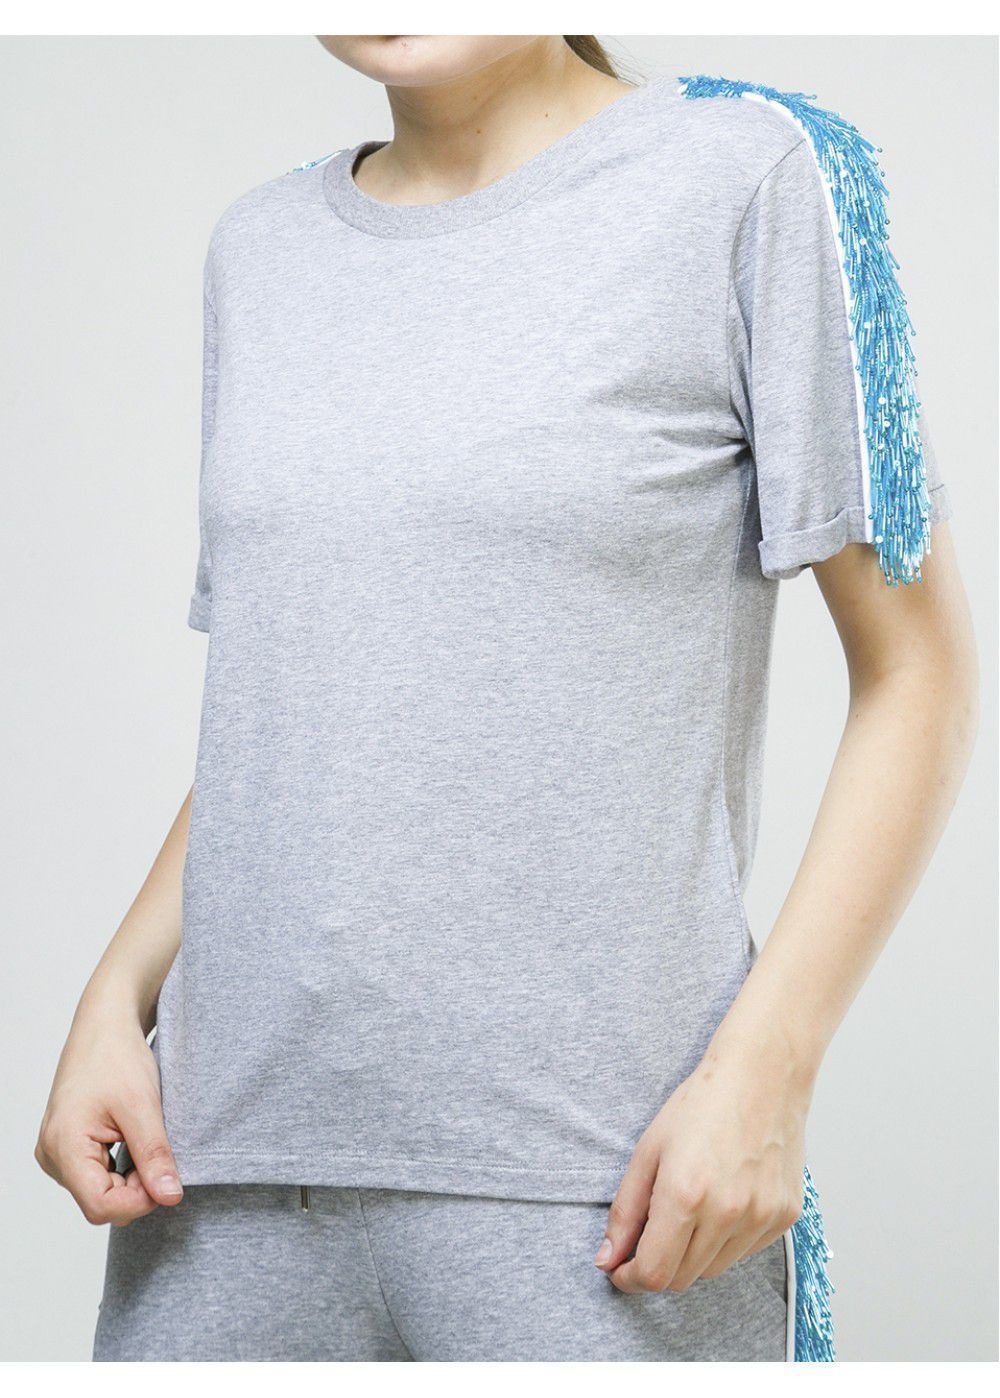 Zayan The Label Blake T-Shirt in Grey